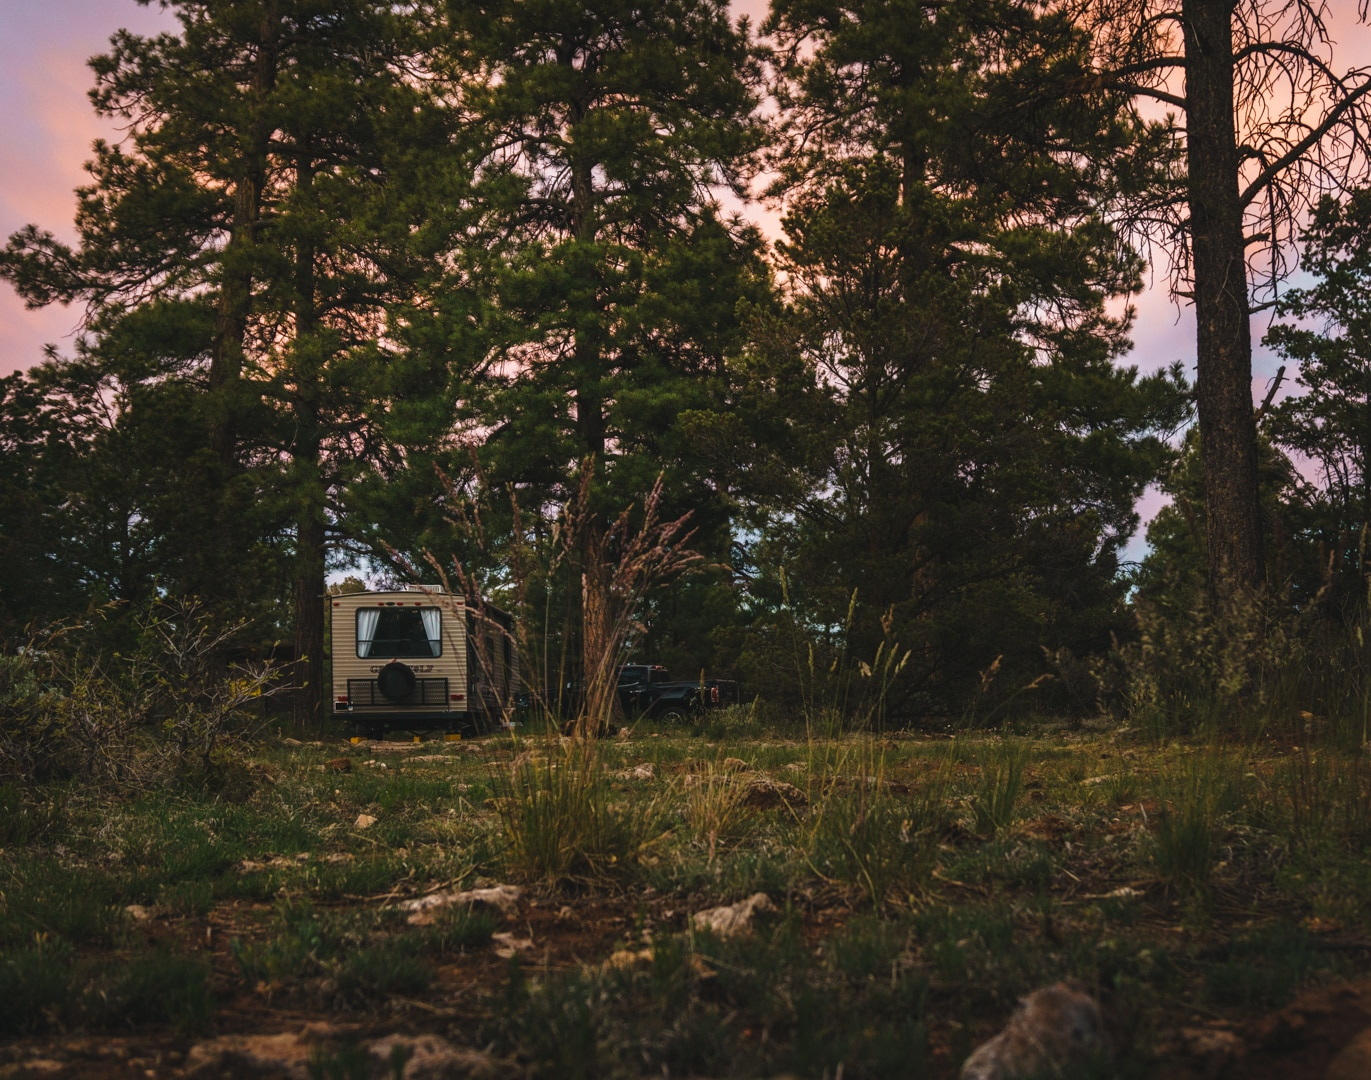 A boondocking spot along the US Forest Road popular with RVers visiting the Grand Canyon.